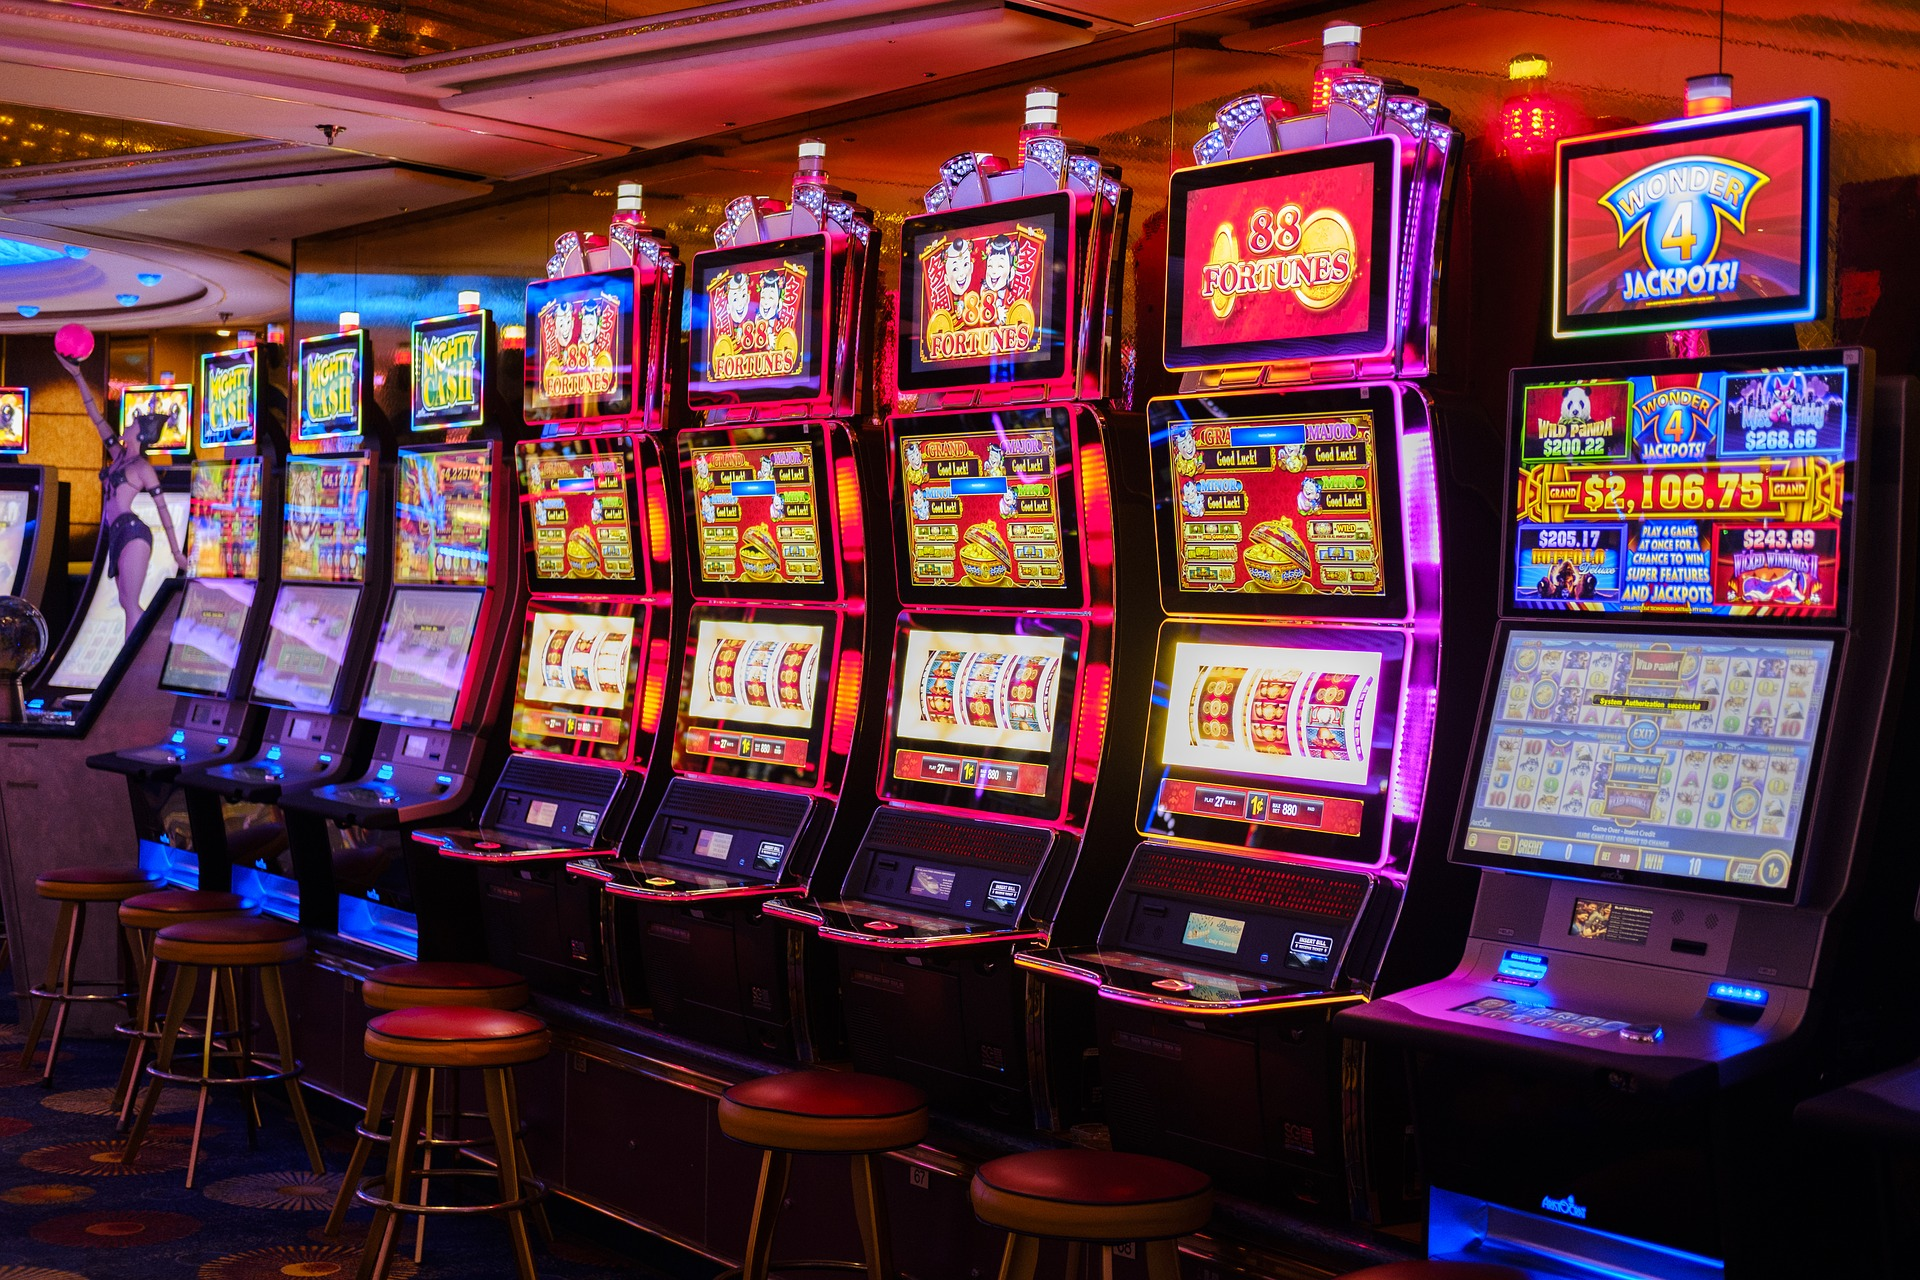 Cashing Out there at Internet casinos